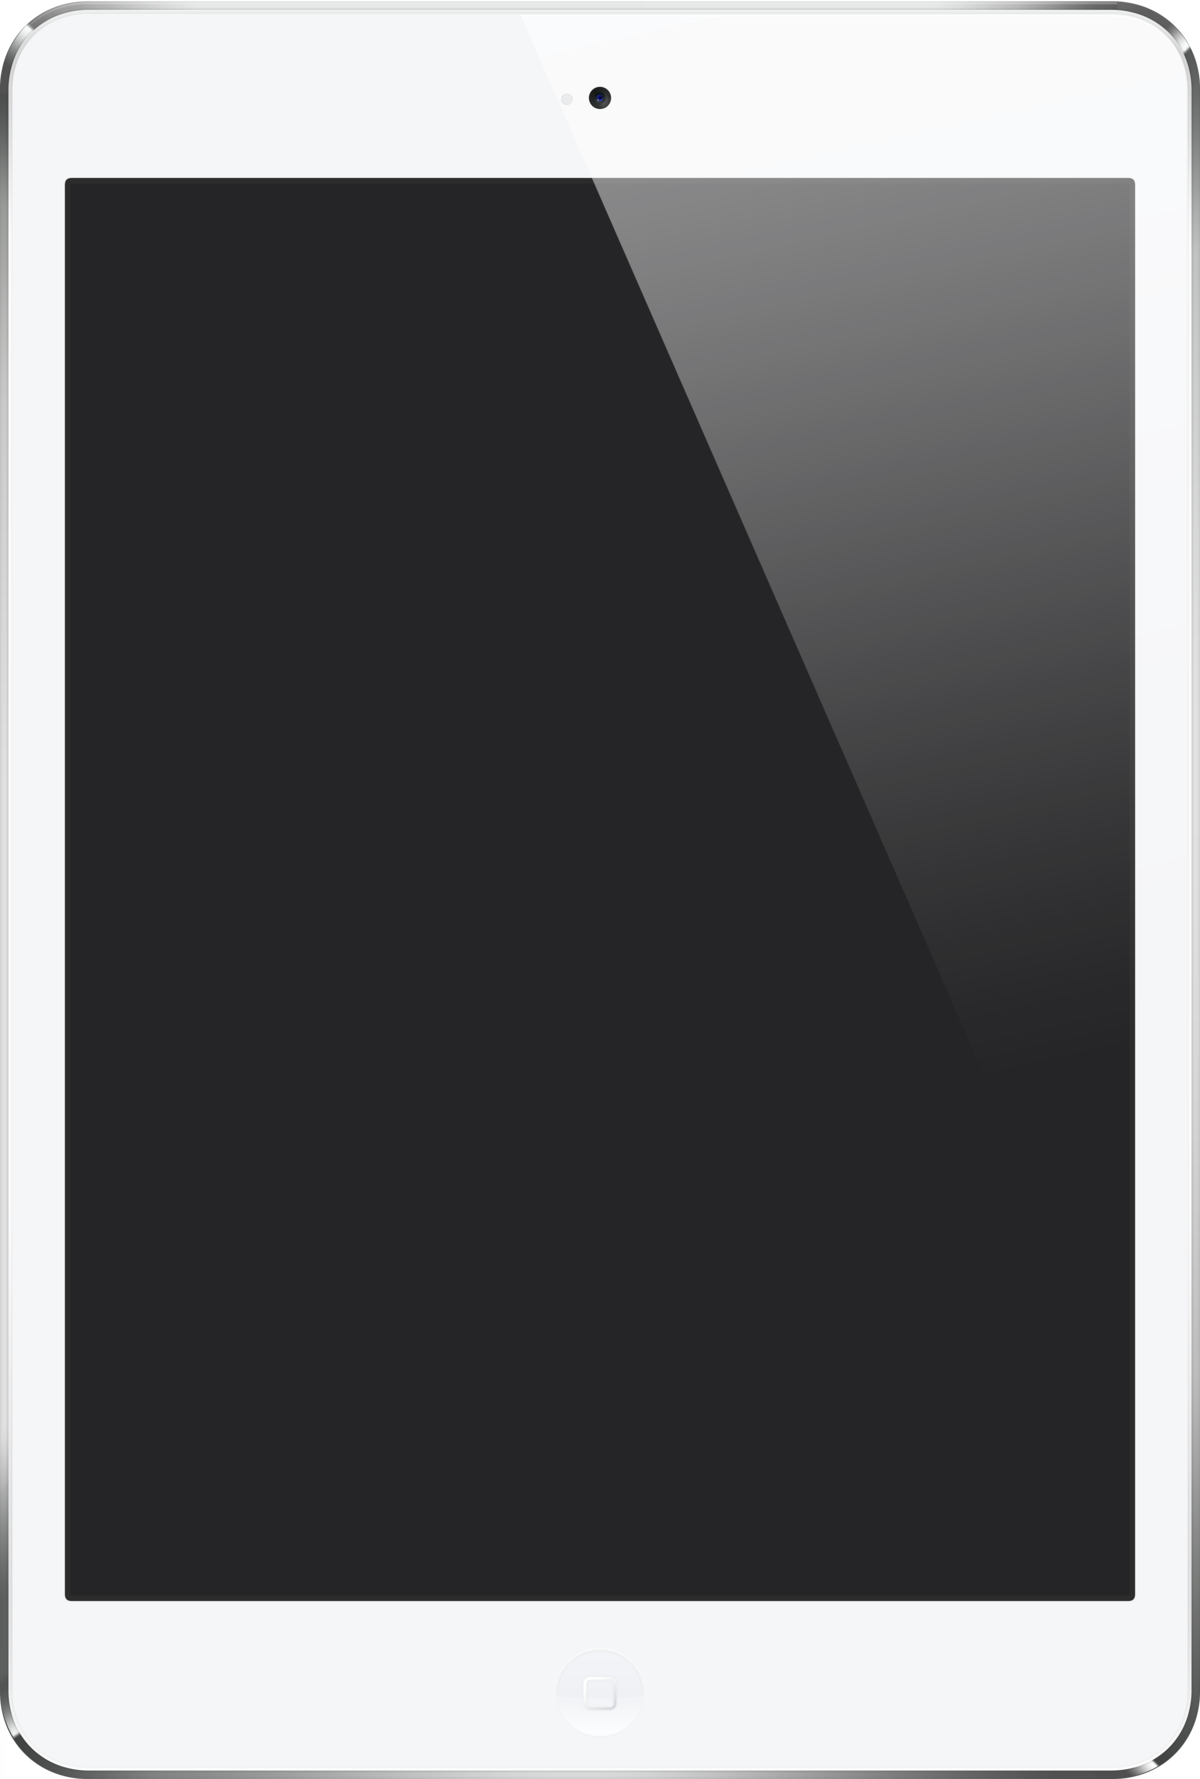 White Ipad Png (+).